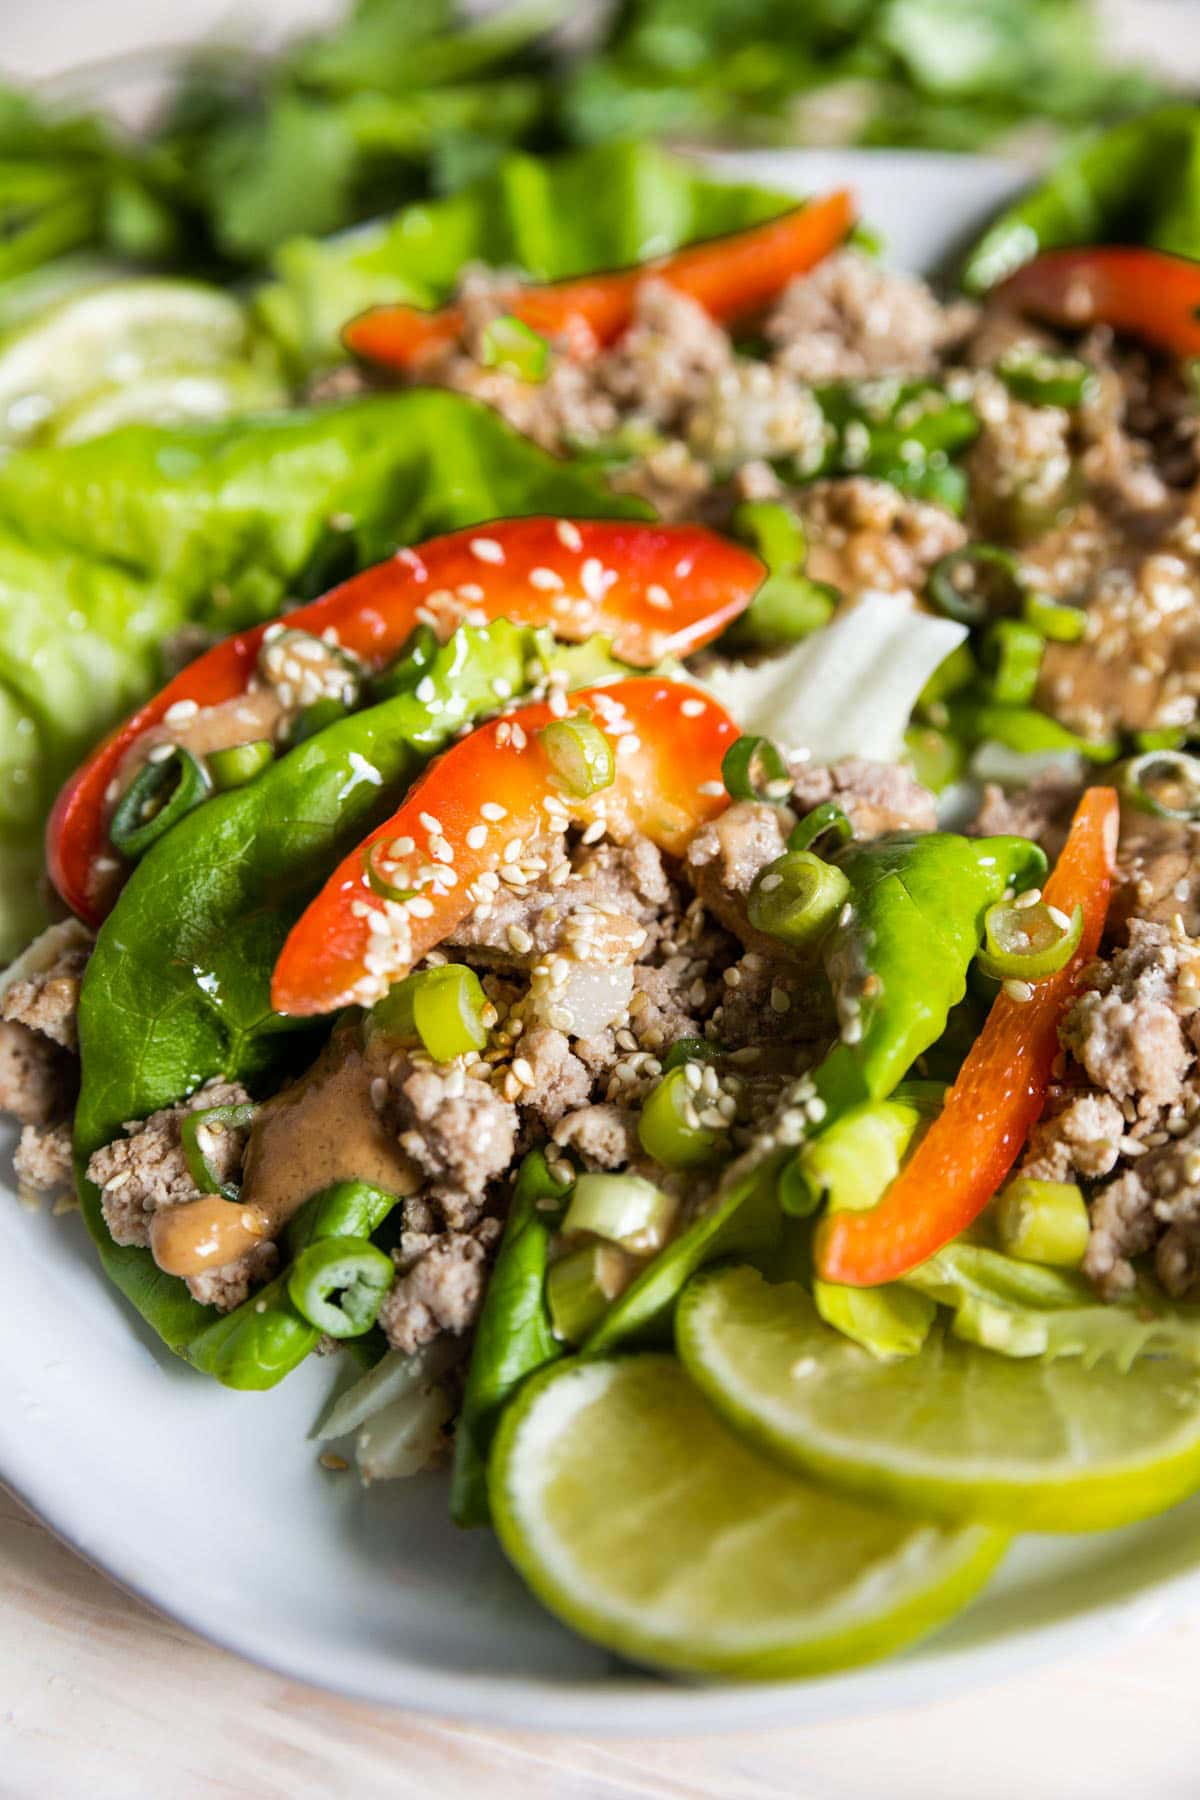 Up close image of inside a lettuce wrap with ground turkey, bell pepper, peanut sauce and onions.